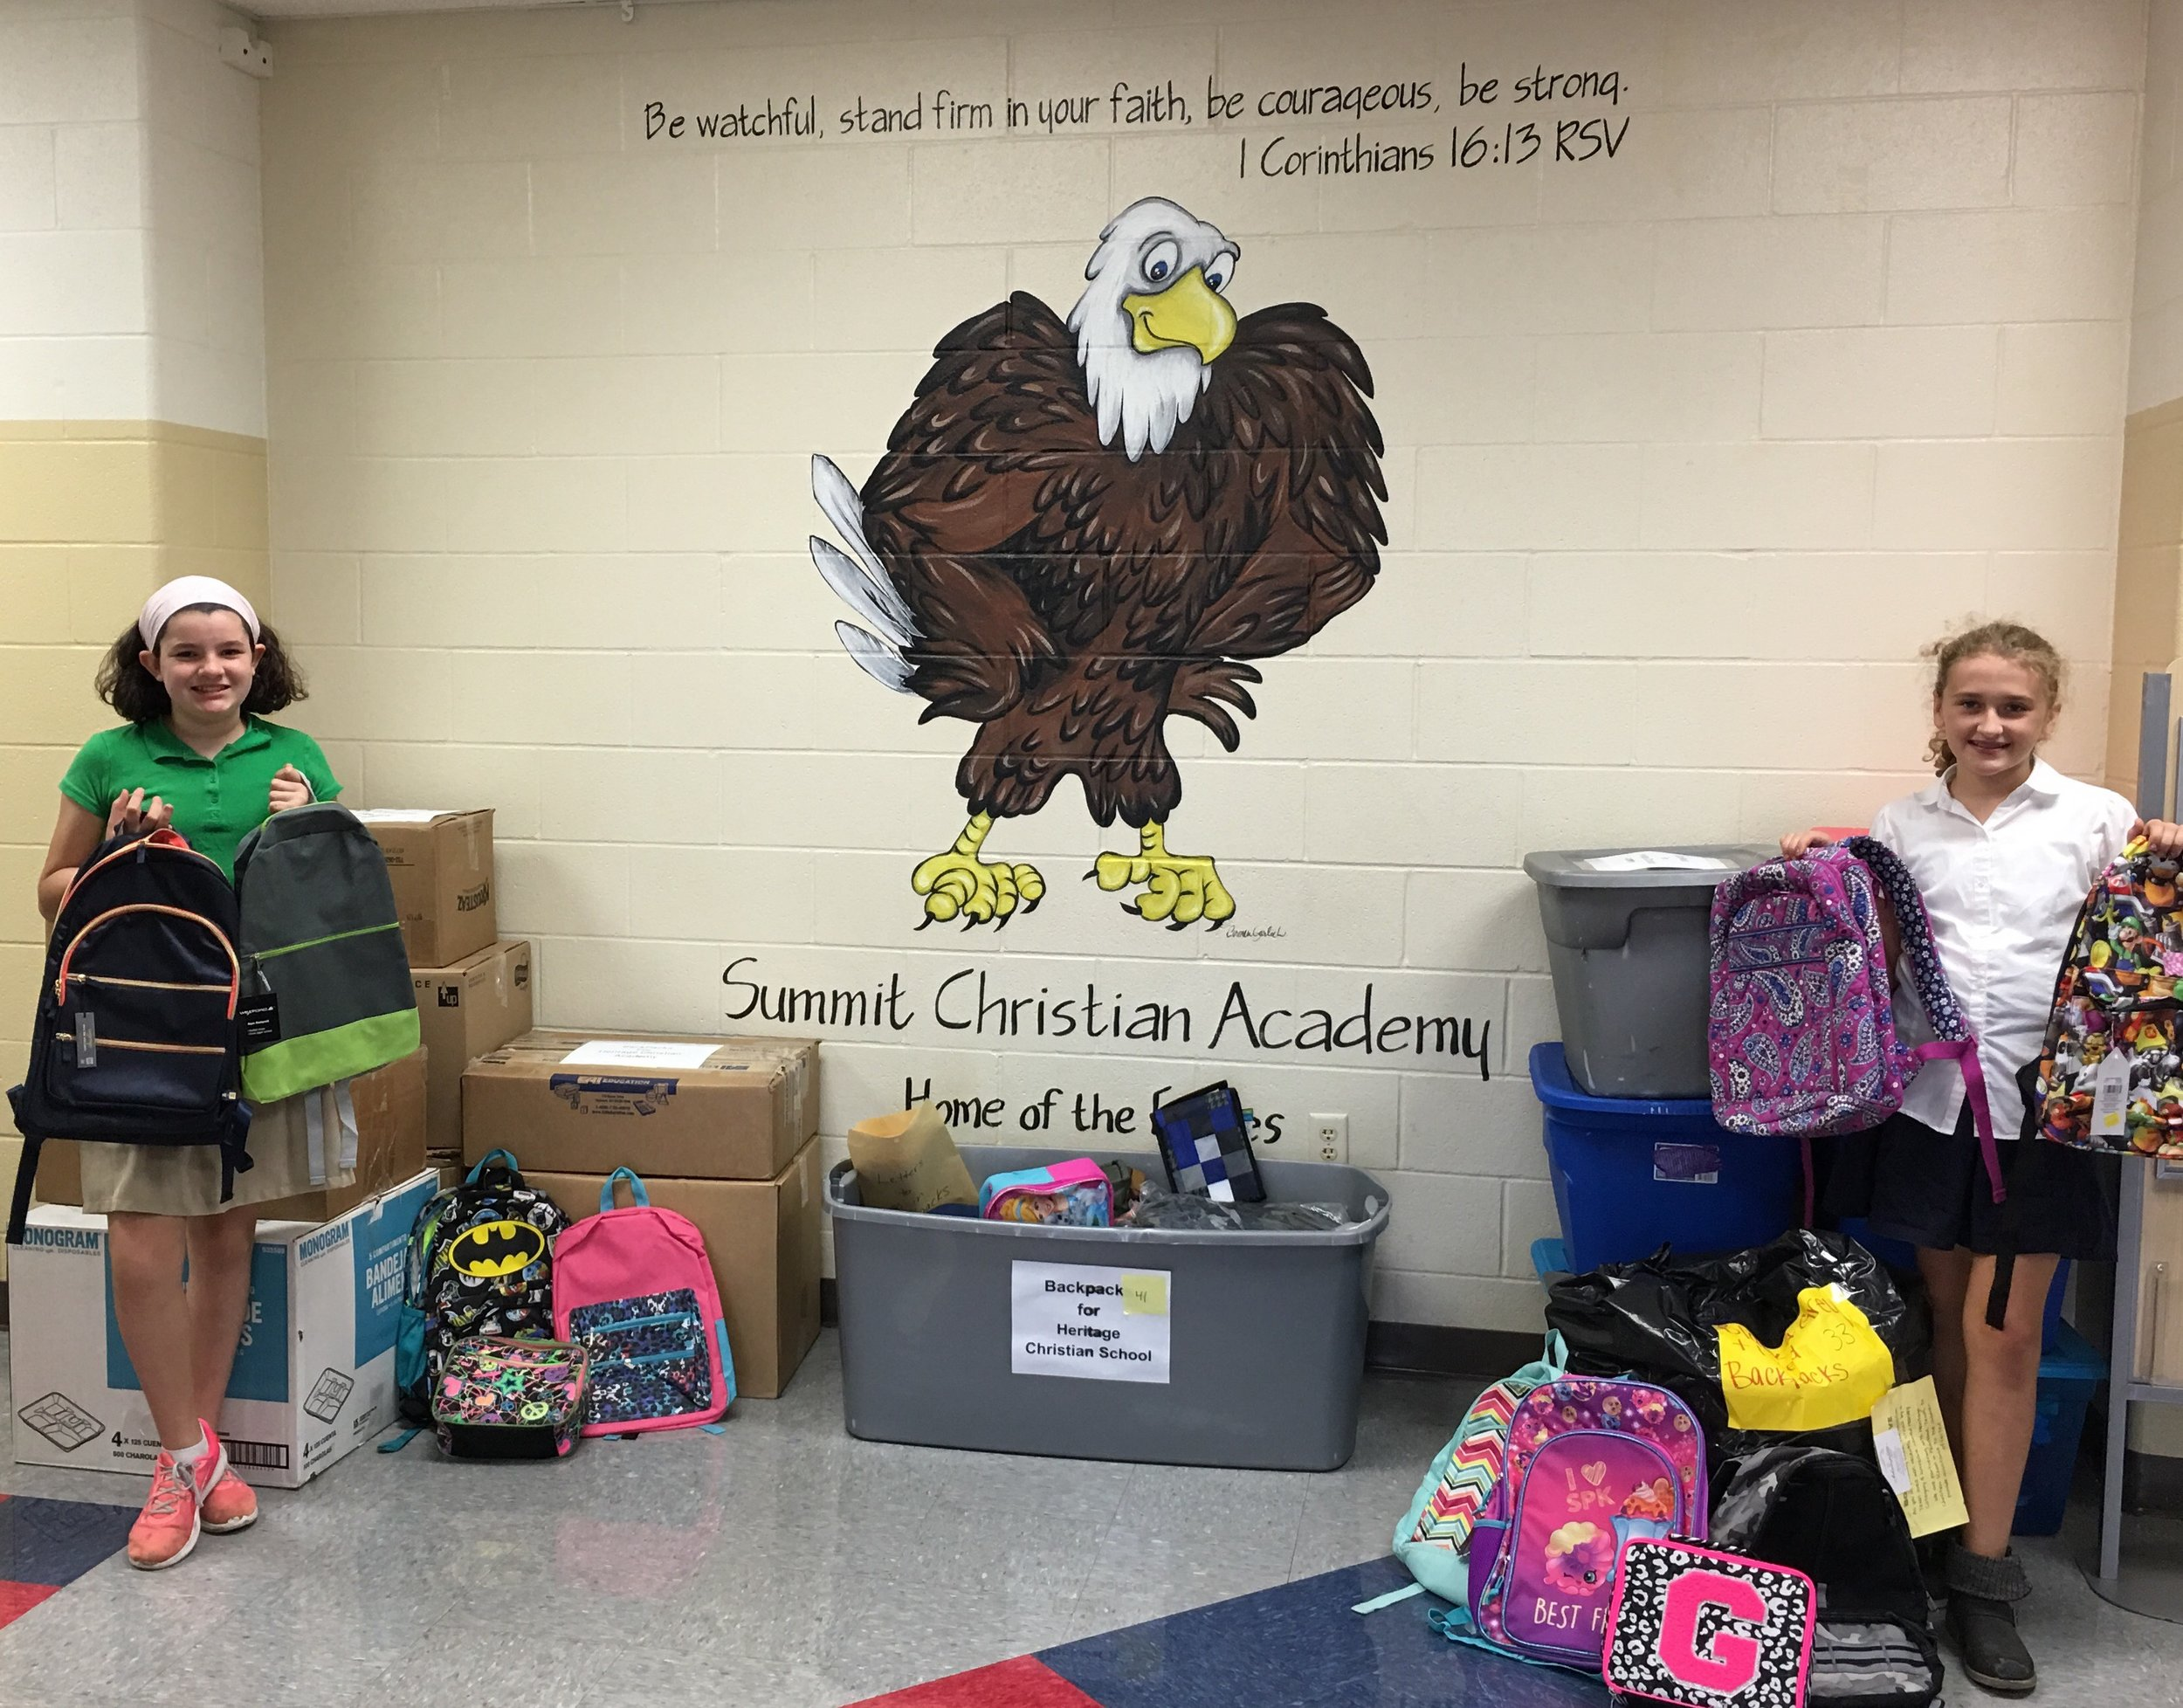 With core values of Igniting Leadership and Cultivating Community, SCA desires to empower students as they seek to impact lives and serve beyond the walls of SCA. SCA 5th Grade students Renee Chapman and Elisabeth White recently organized a drive which collected nearly 300 backpacks to send to devastated families in Houston.